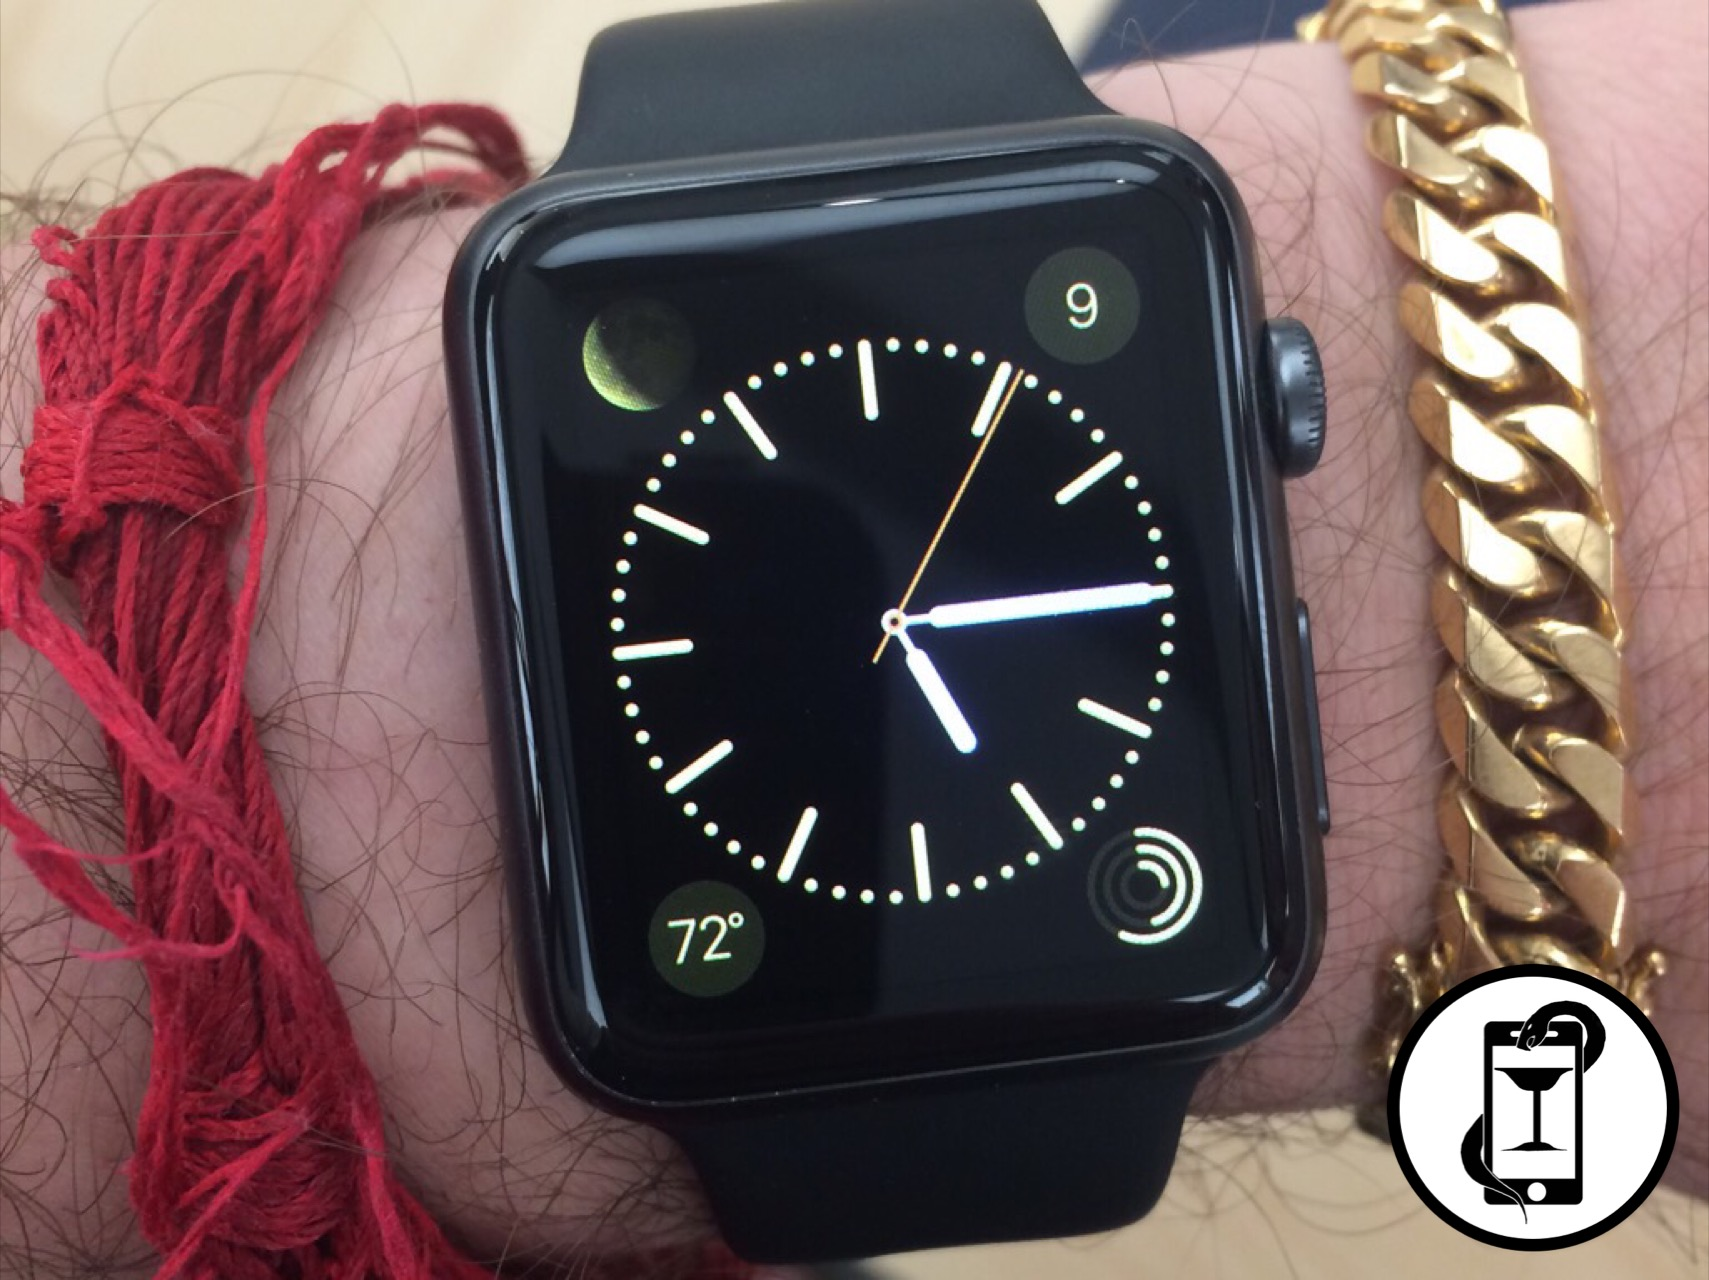 The Apple Watch 48mm Sport Version with default strap. The red string bracelet is from a Cambodian wedding tradition if you were curious.